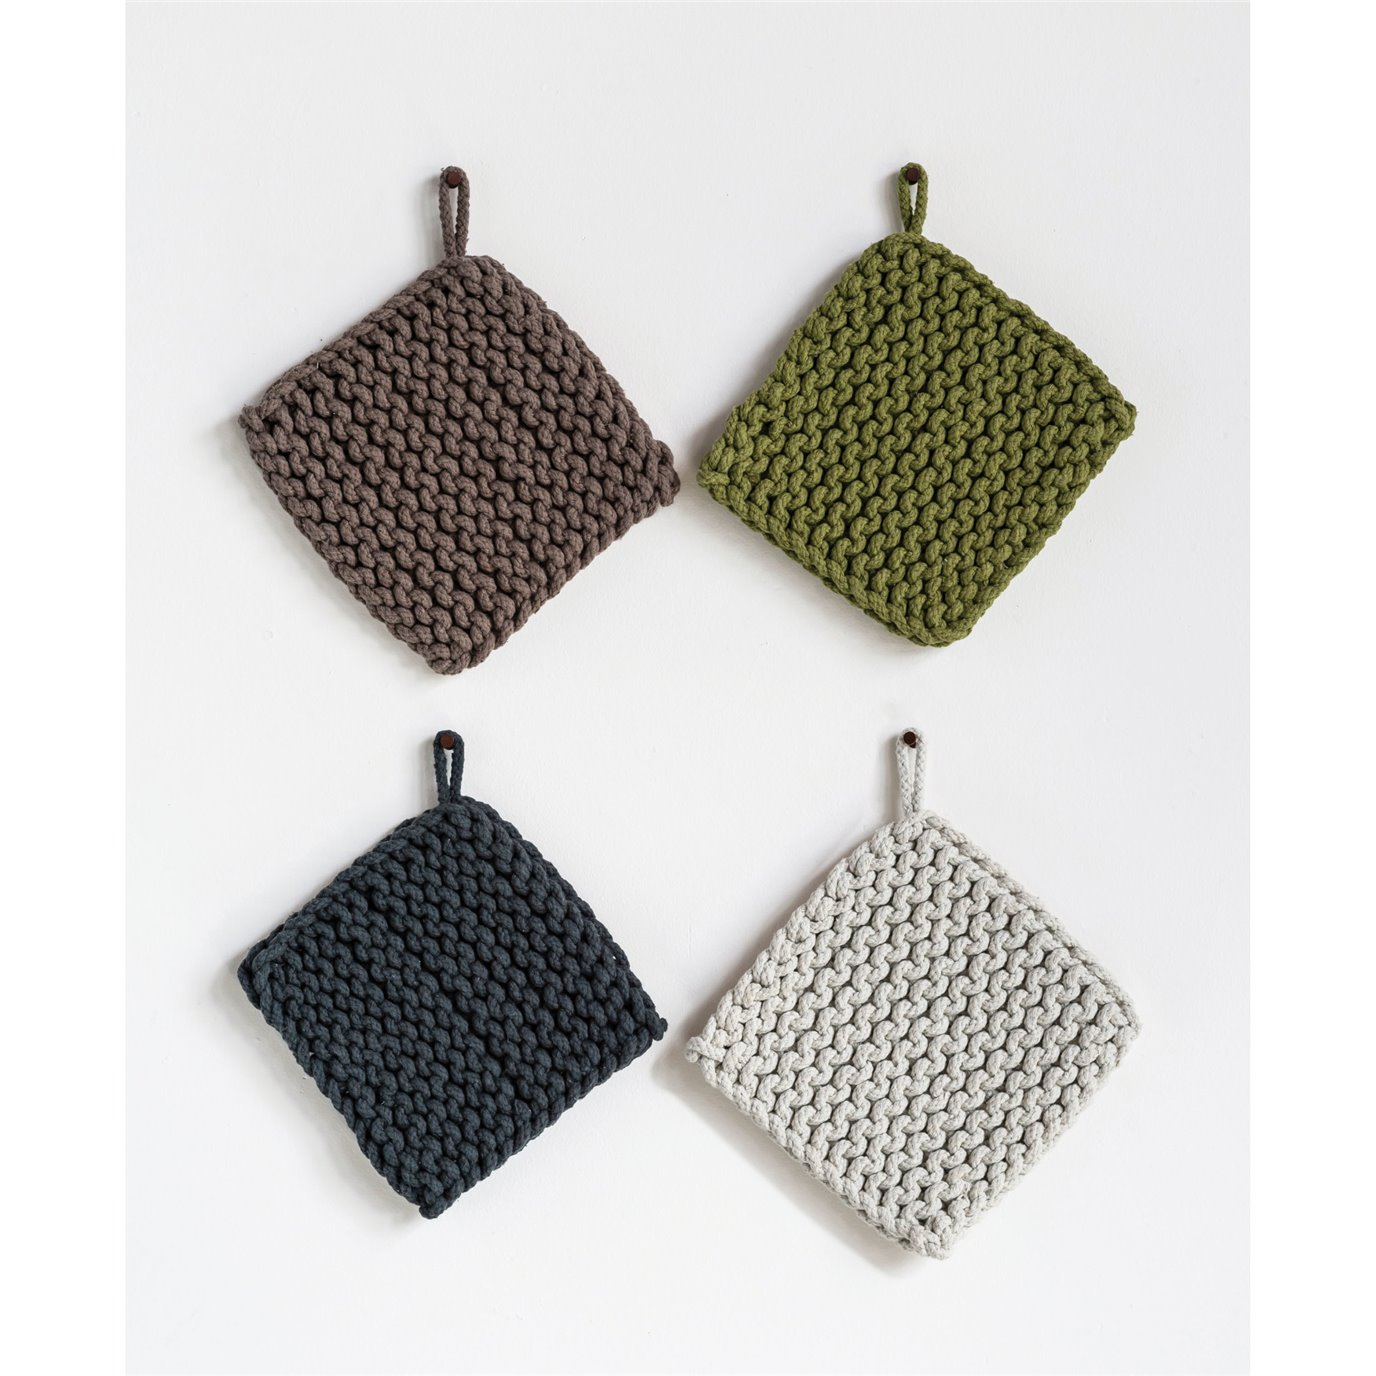 Square Cotton Crocheted Pot Holder (Set of 4 Colors)